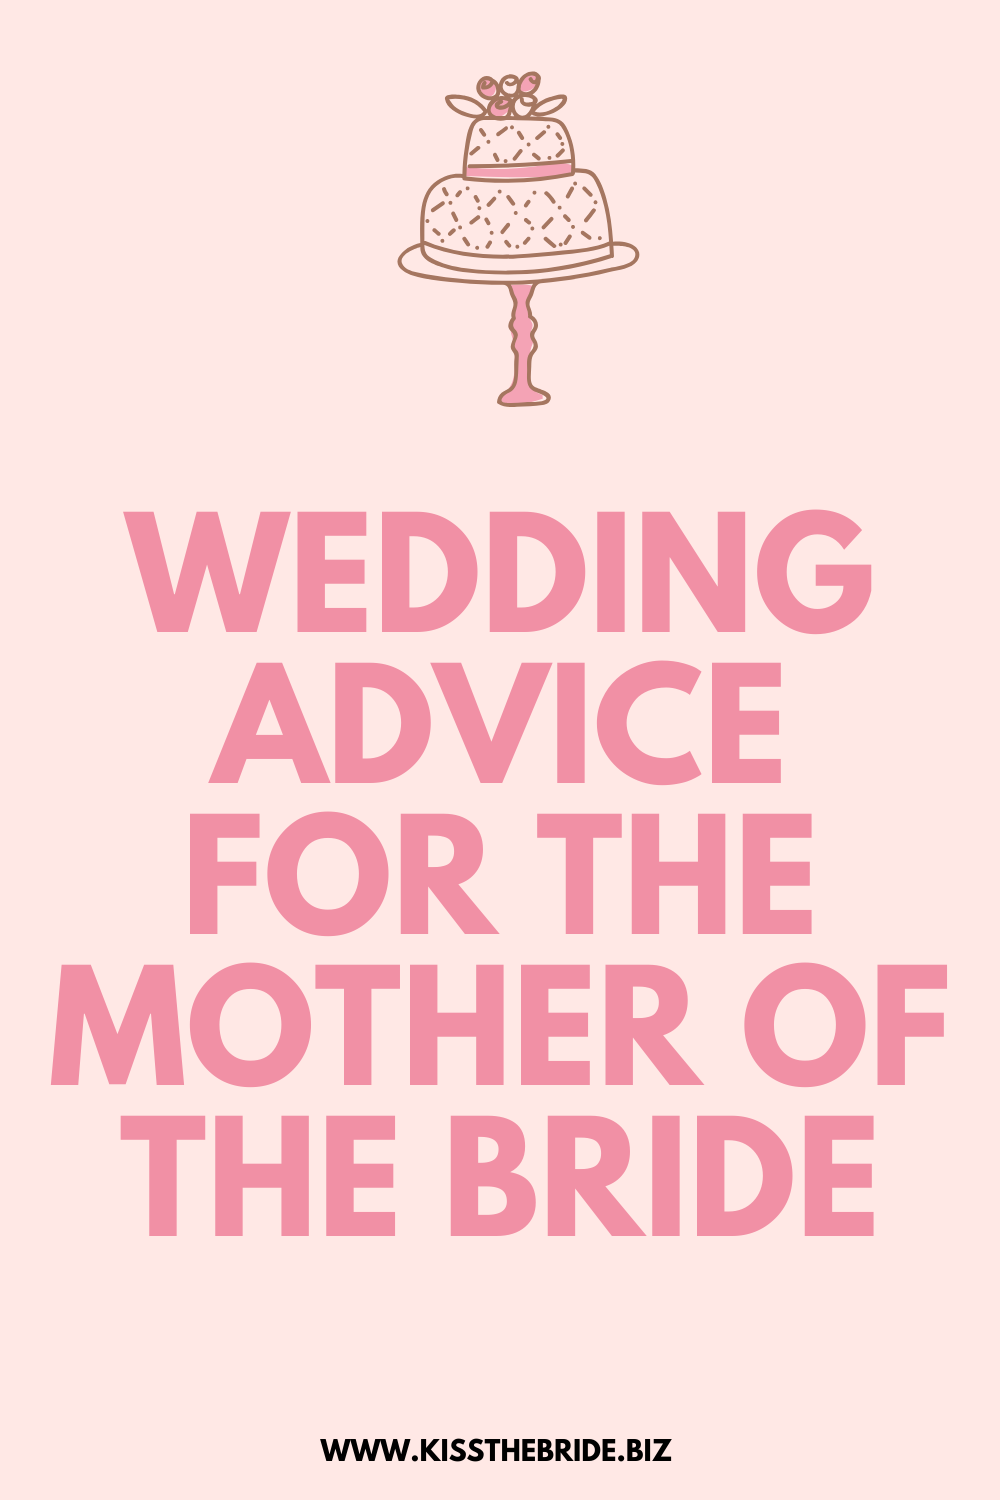 Mother of the Bride advice